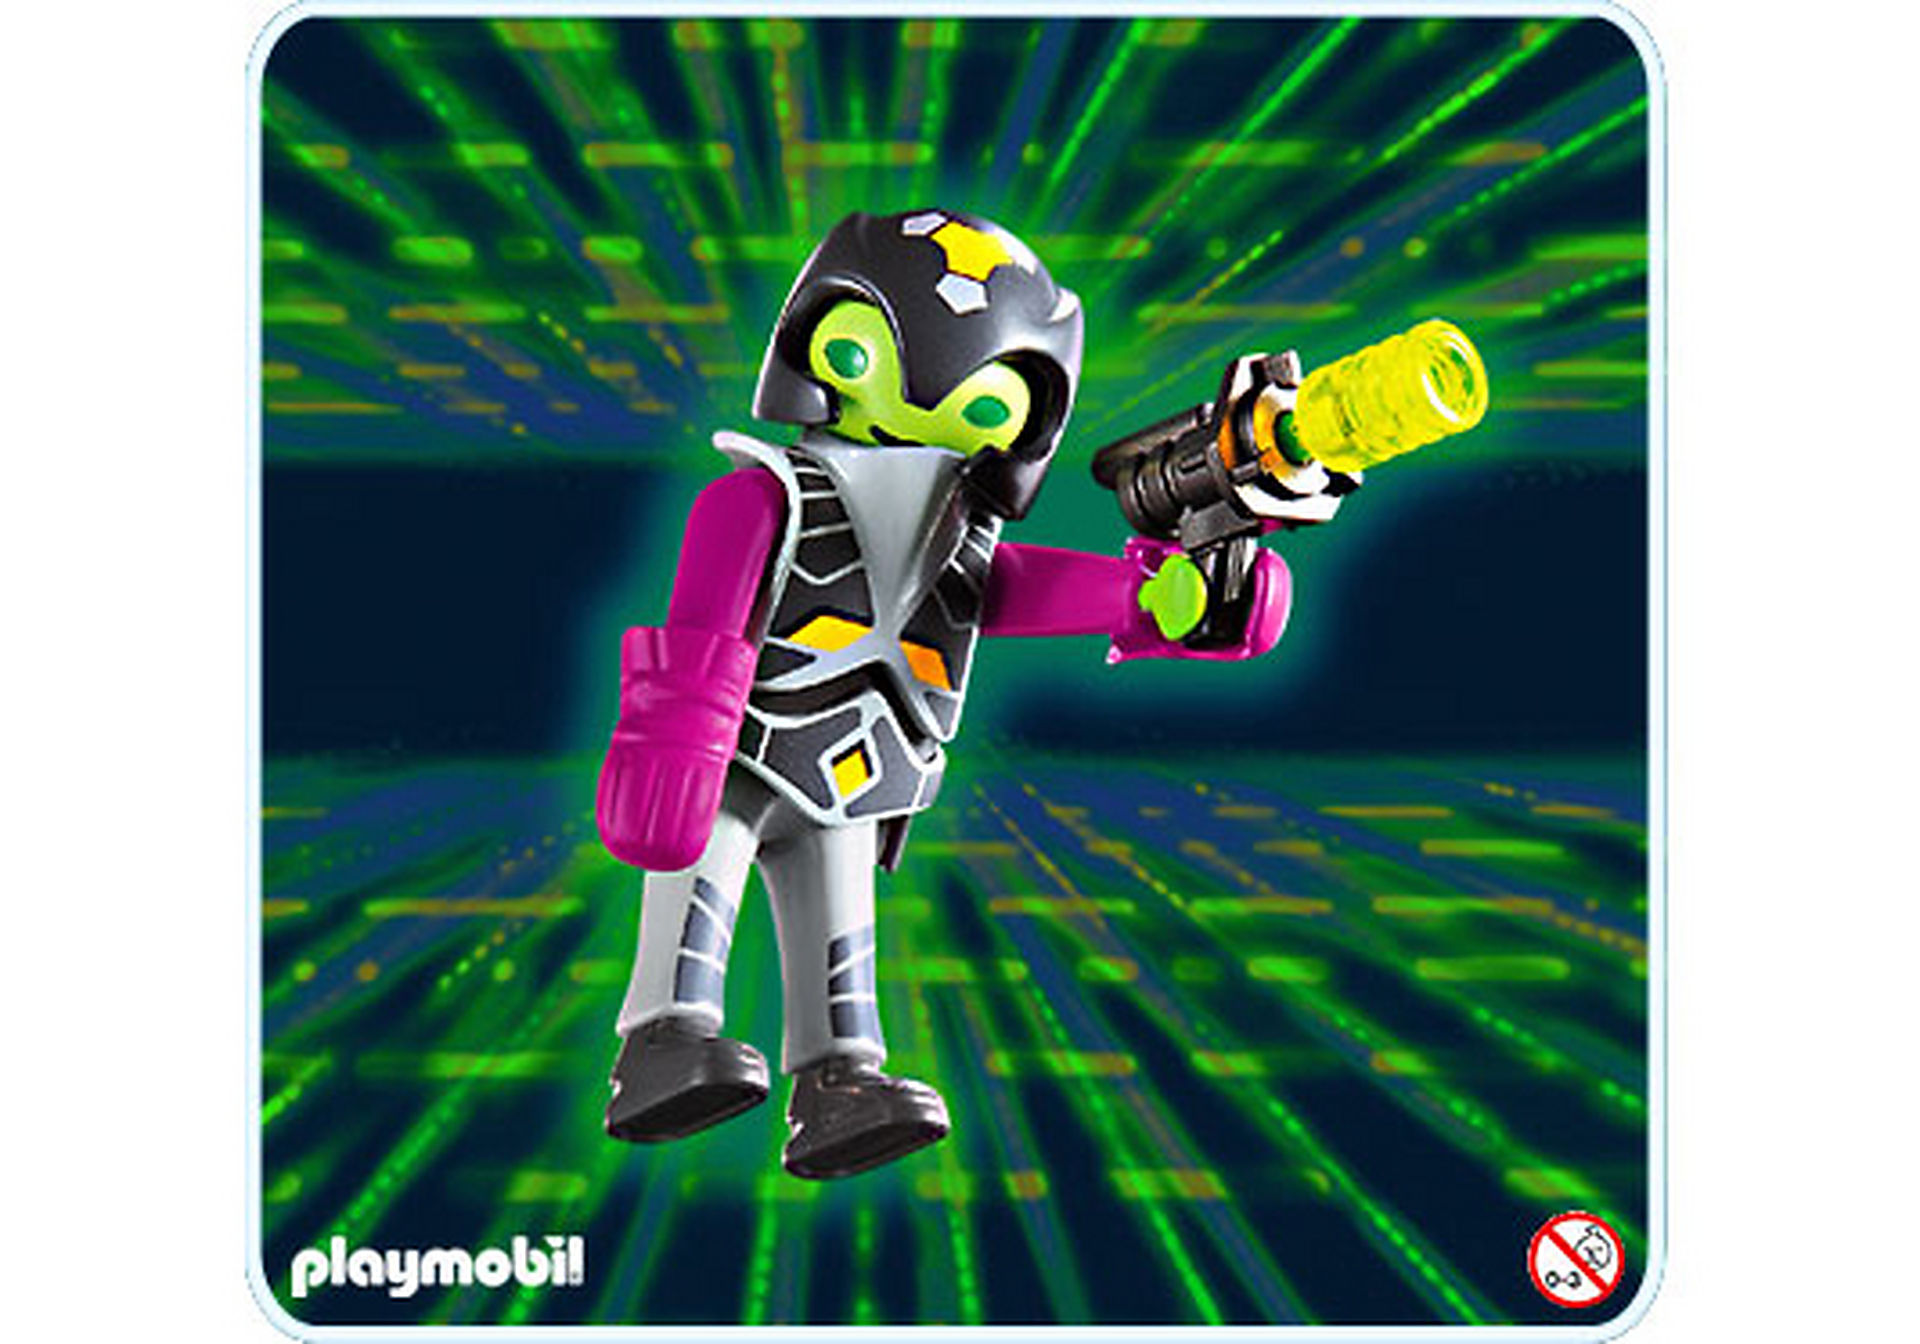 http://media.playmobil.com/i/playmobil/4590-A_product_detail/Alien